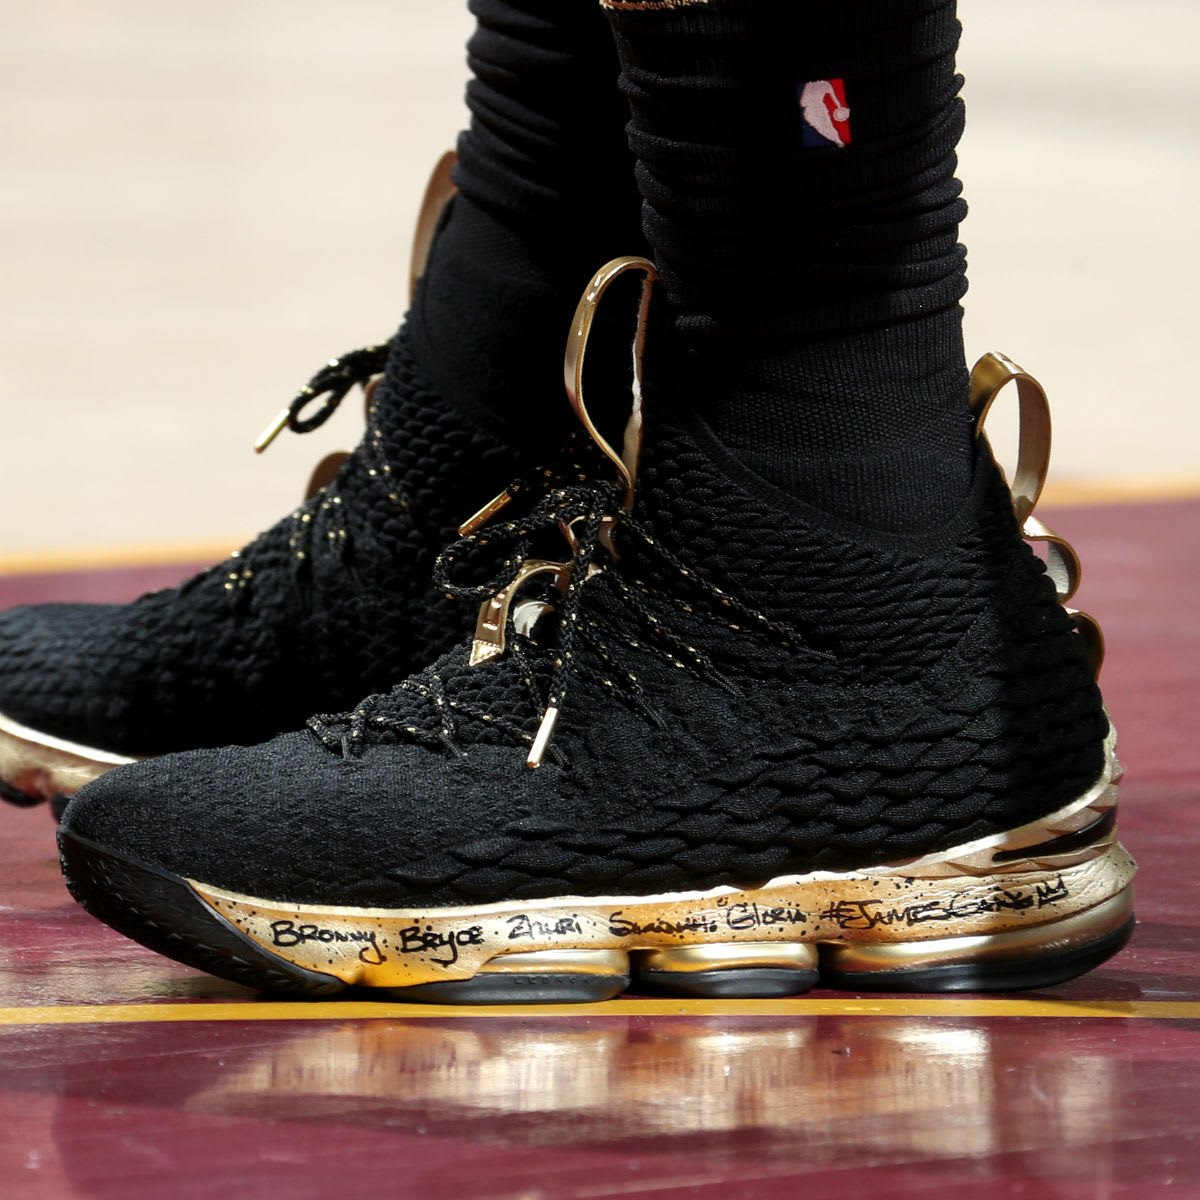 LeBron James Nike LeBron 15 Black Gold NBA Finals Game 4 PE